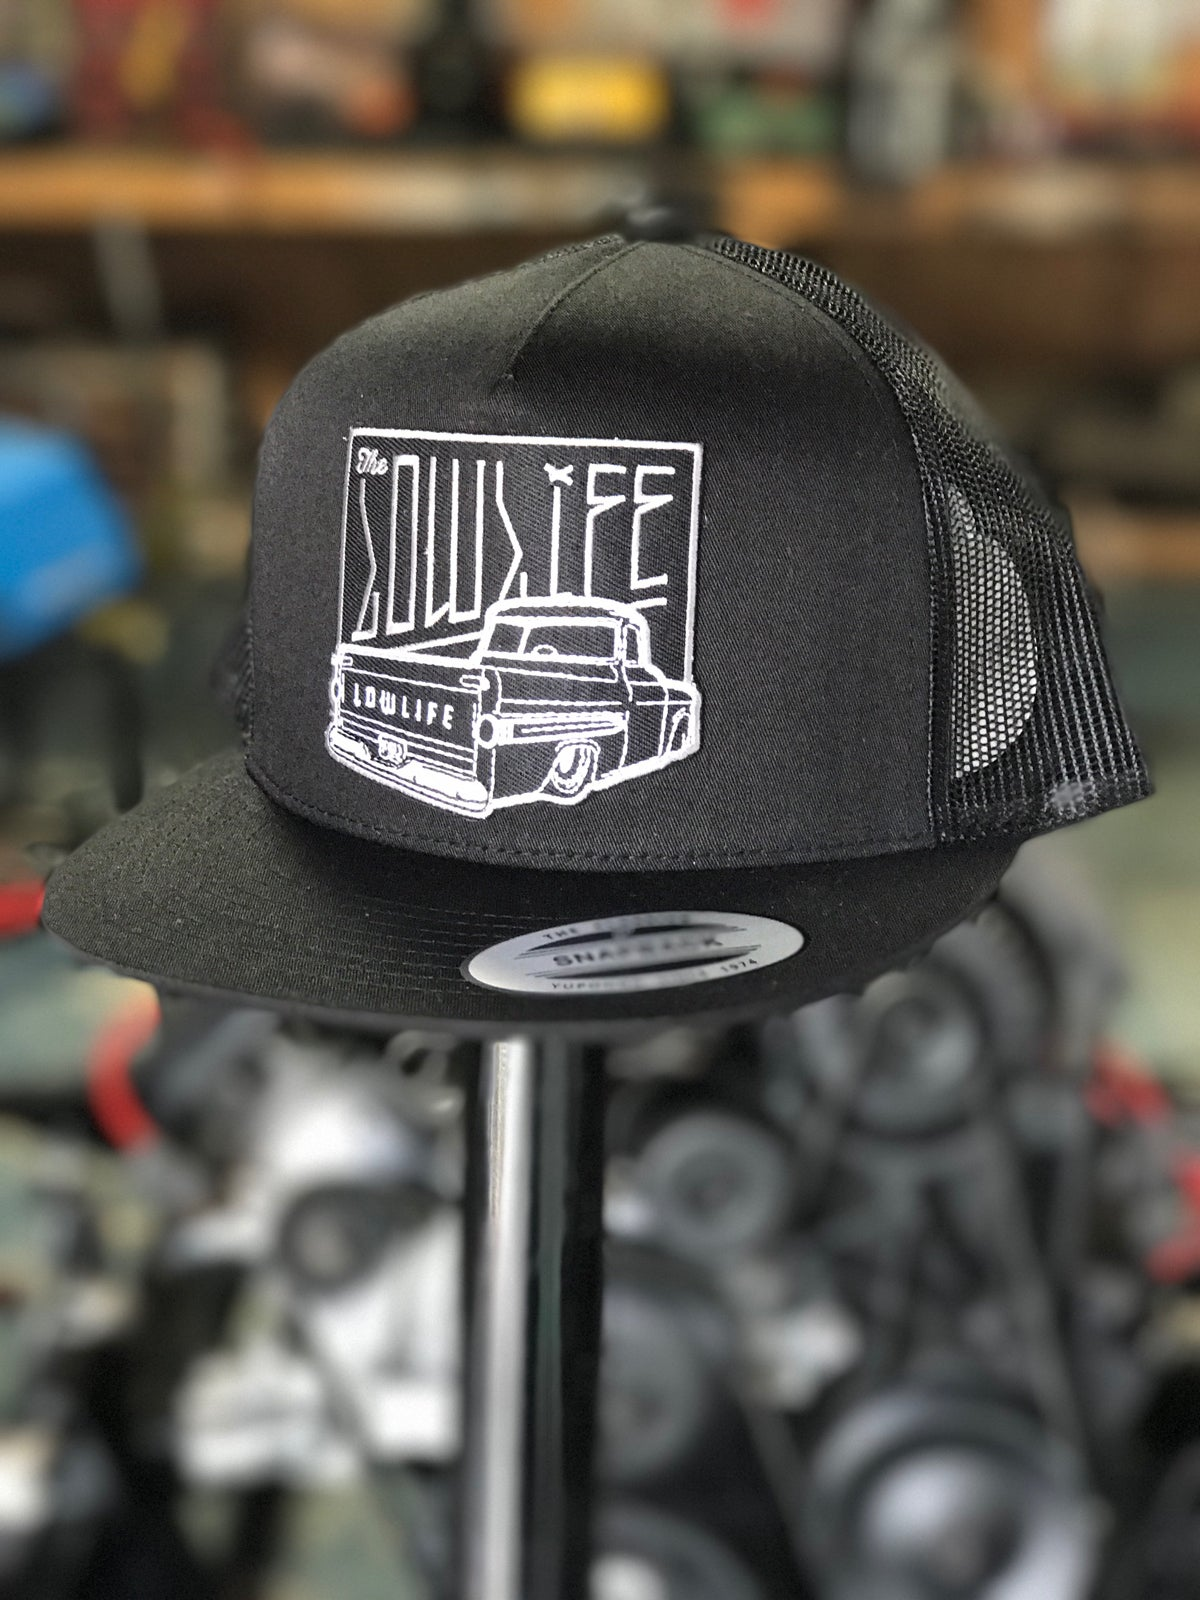 Image of The Lowlife Blackedout Fleetside Patch Hat